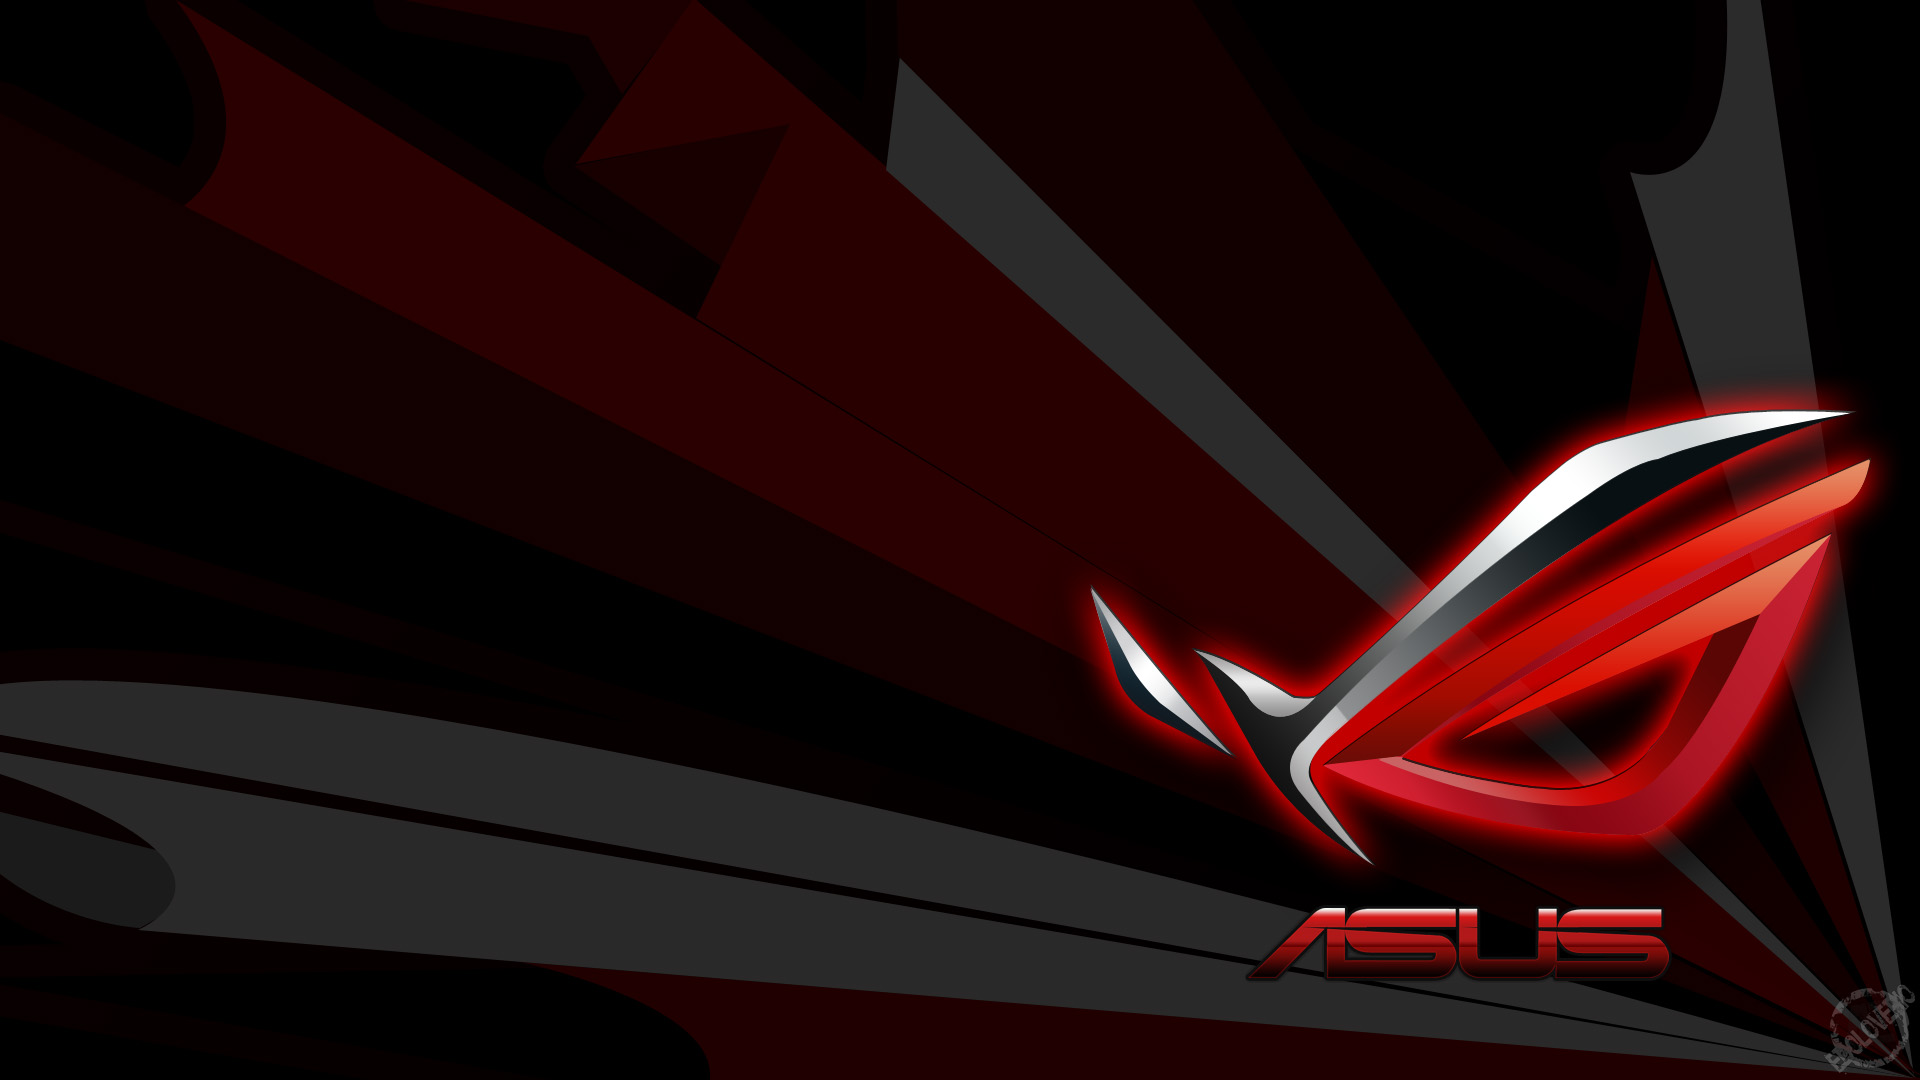 Asus Hd Wallpaper Background Image 1920x1080 Id 177602